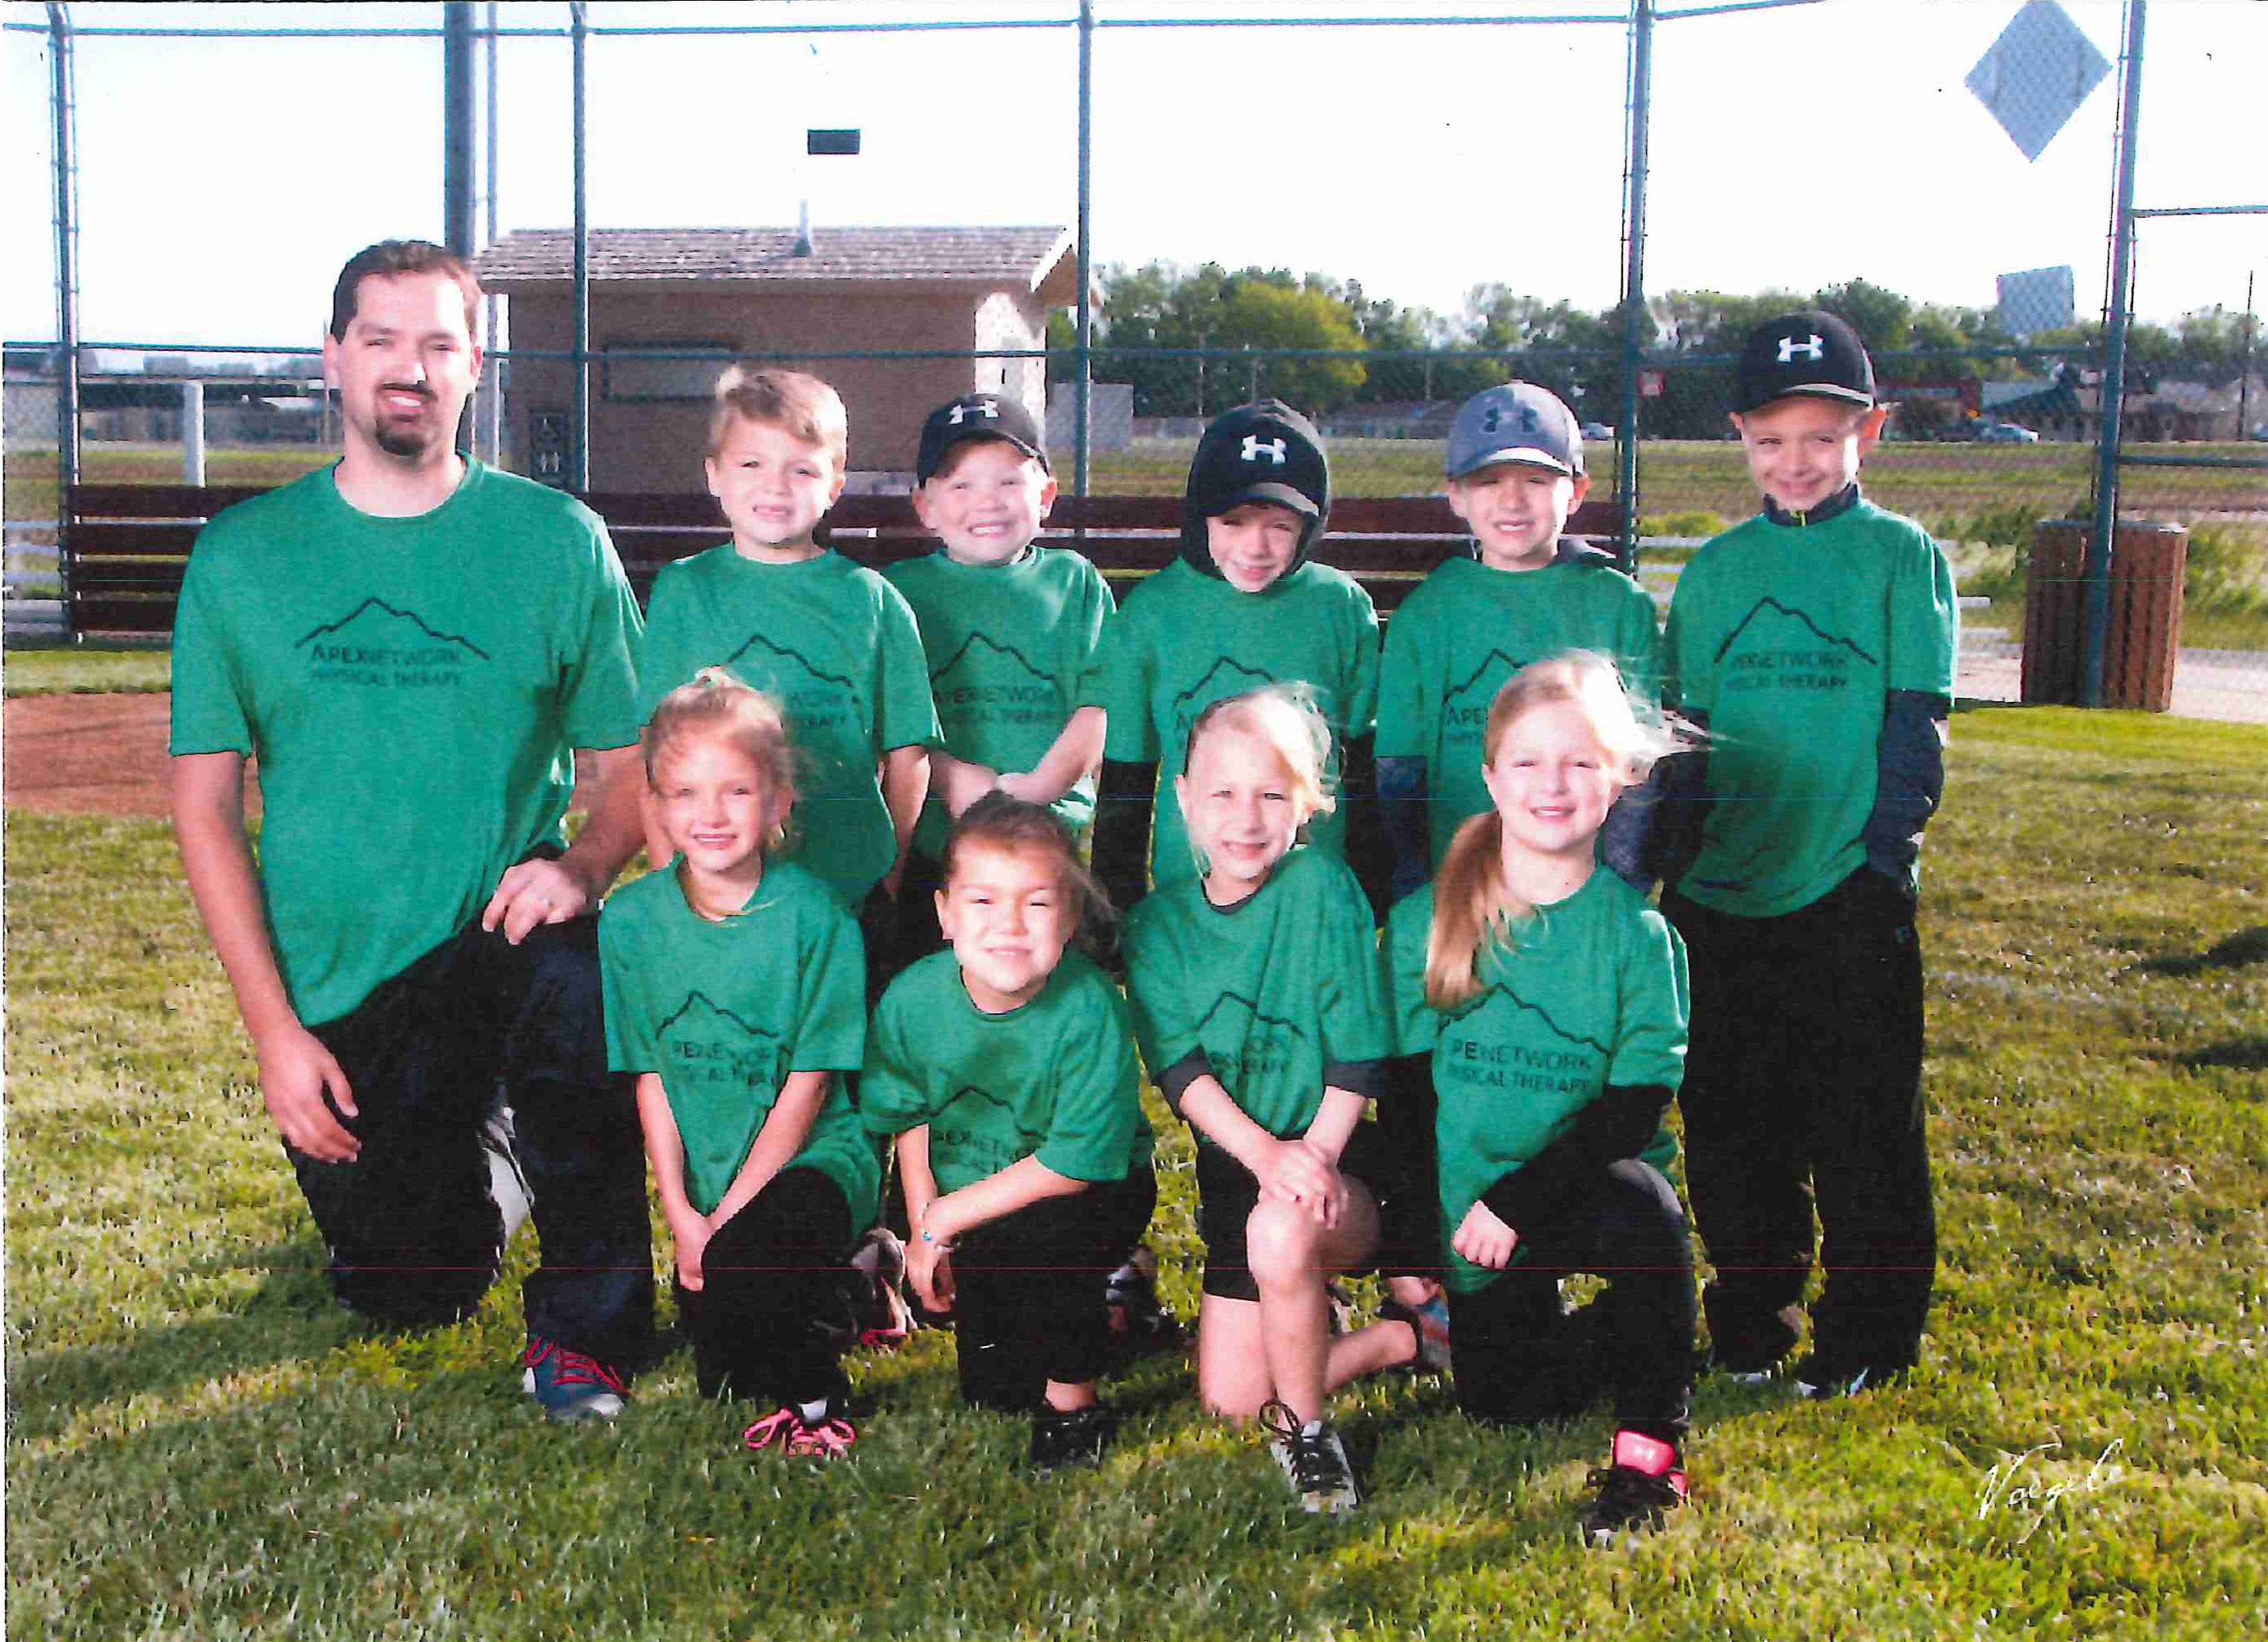 youth softball Archives - ApexNetwork Physical TherapyApexNetwork